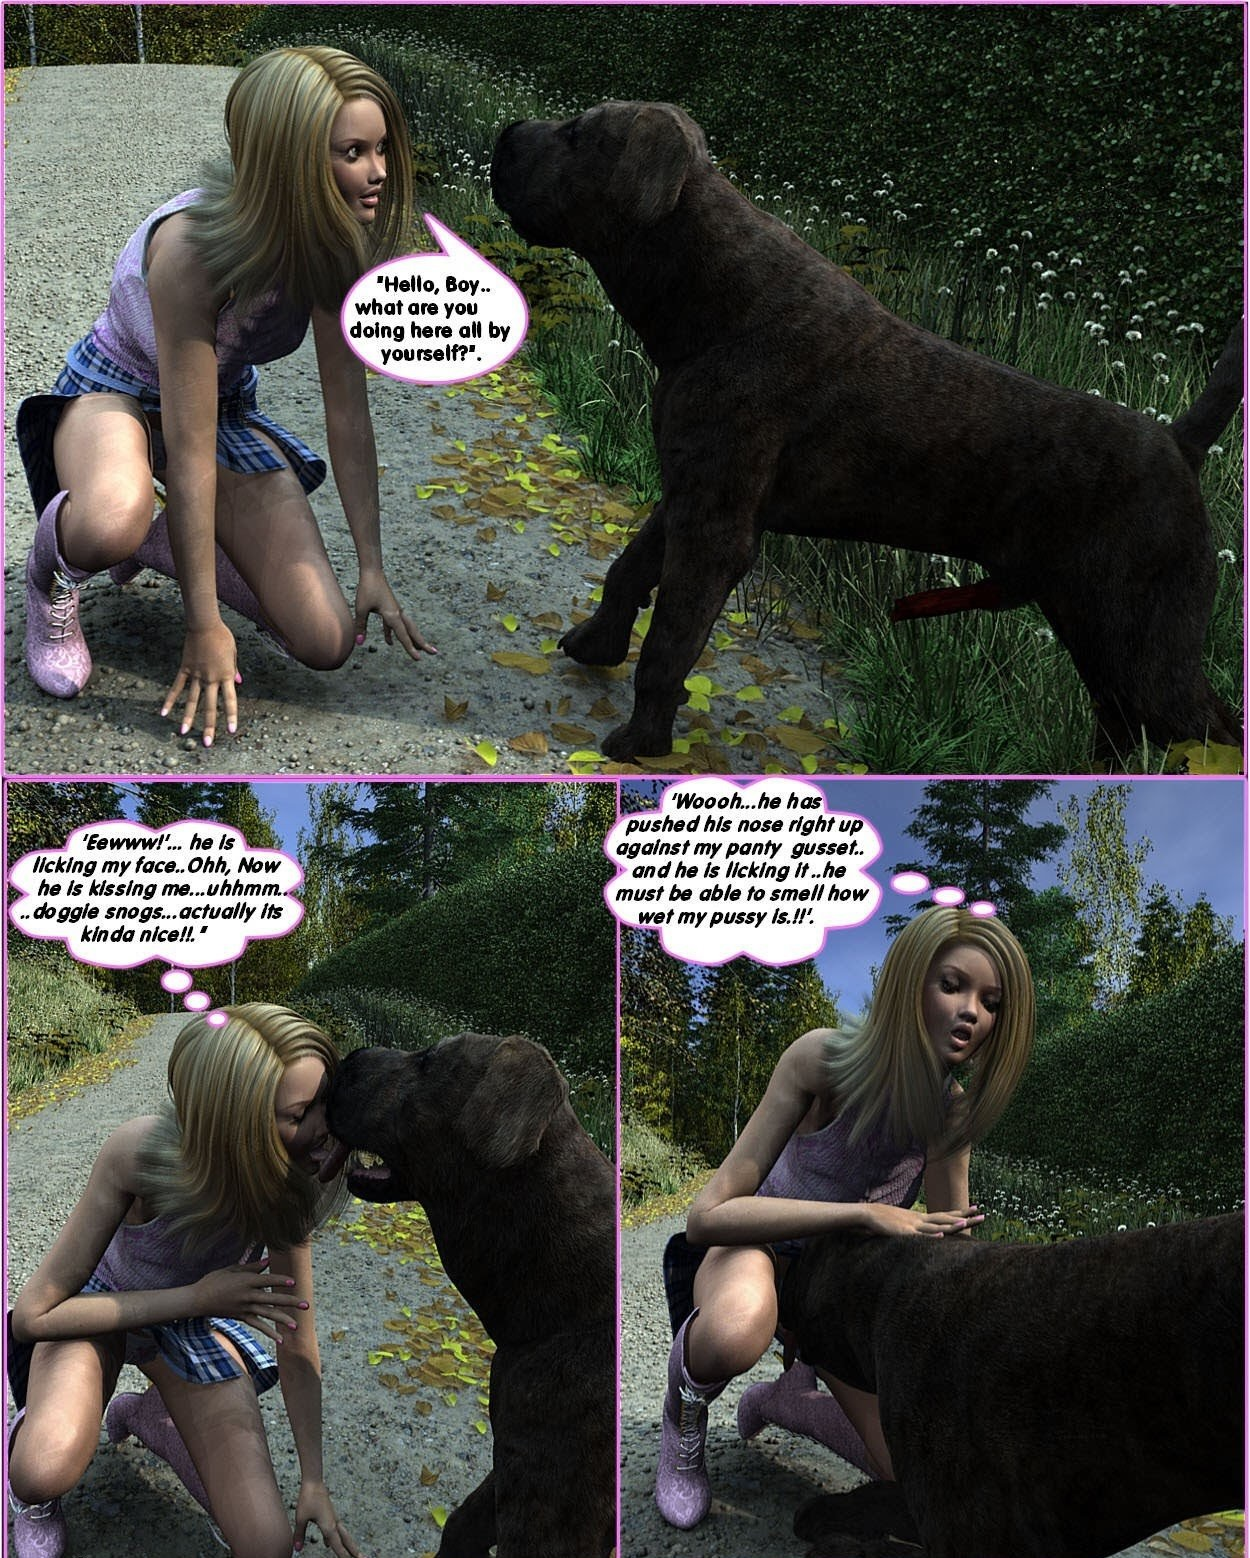 Animal Porn With A Man darksoul3d – racheal's romp | free 3d animal porn comics